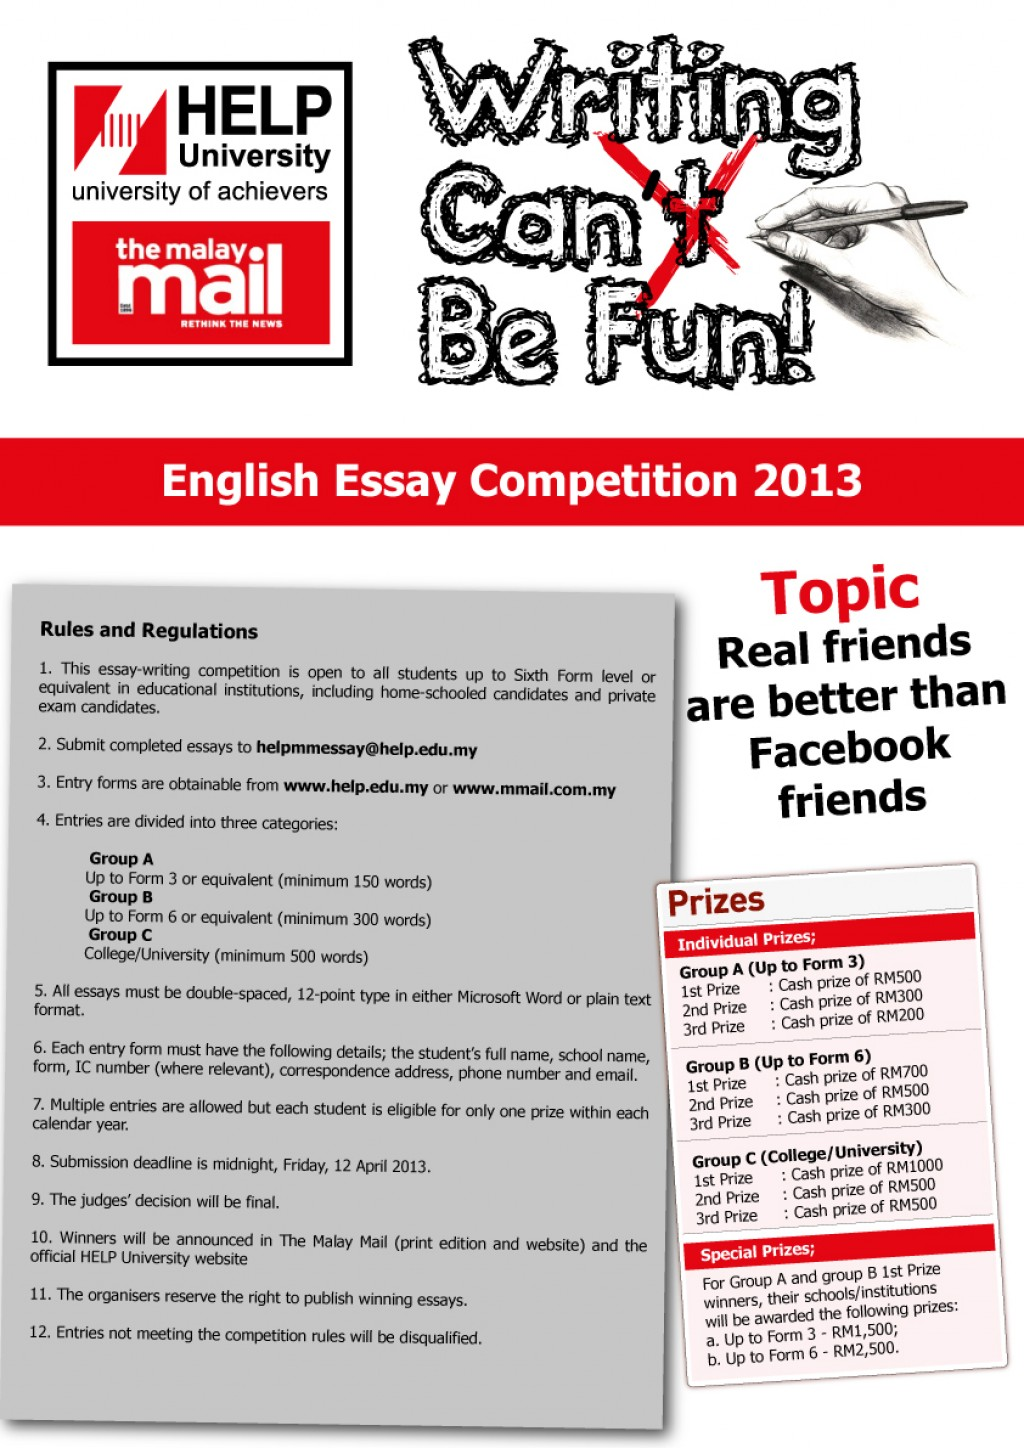 017 Essay Writing Contest Example Competitions For College Students Incredible Free Contests 2018 International High School India Large